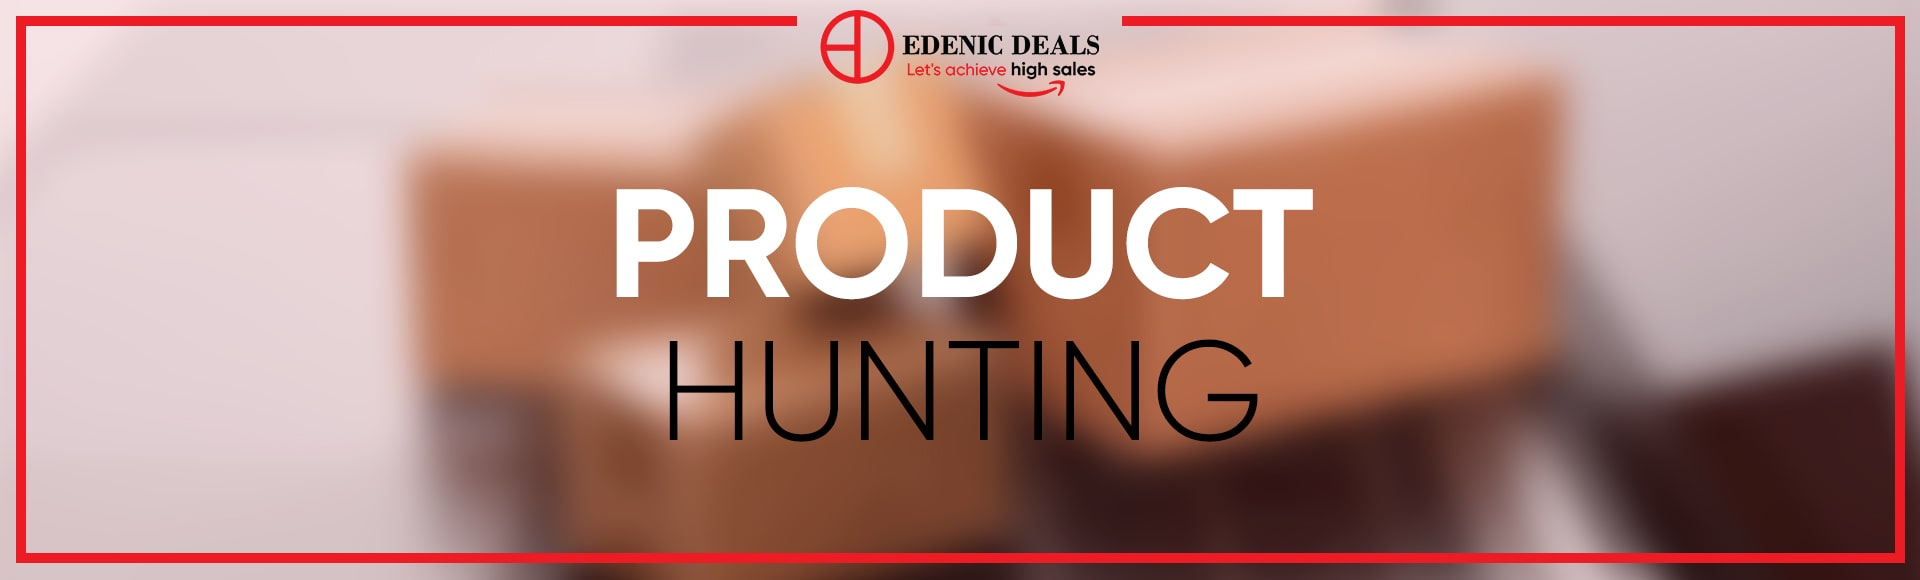 Edenic Deals Product Hunting